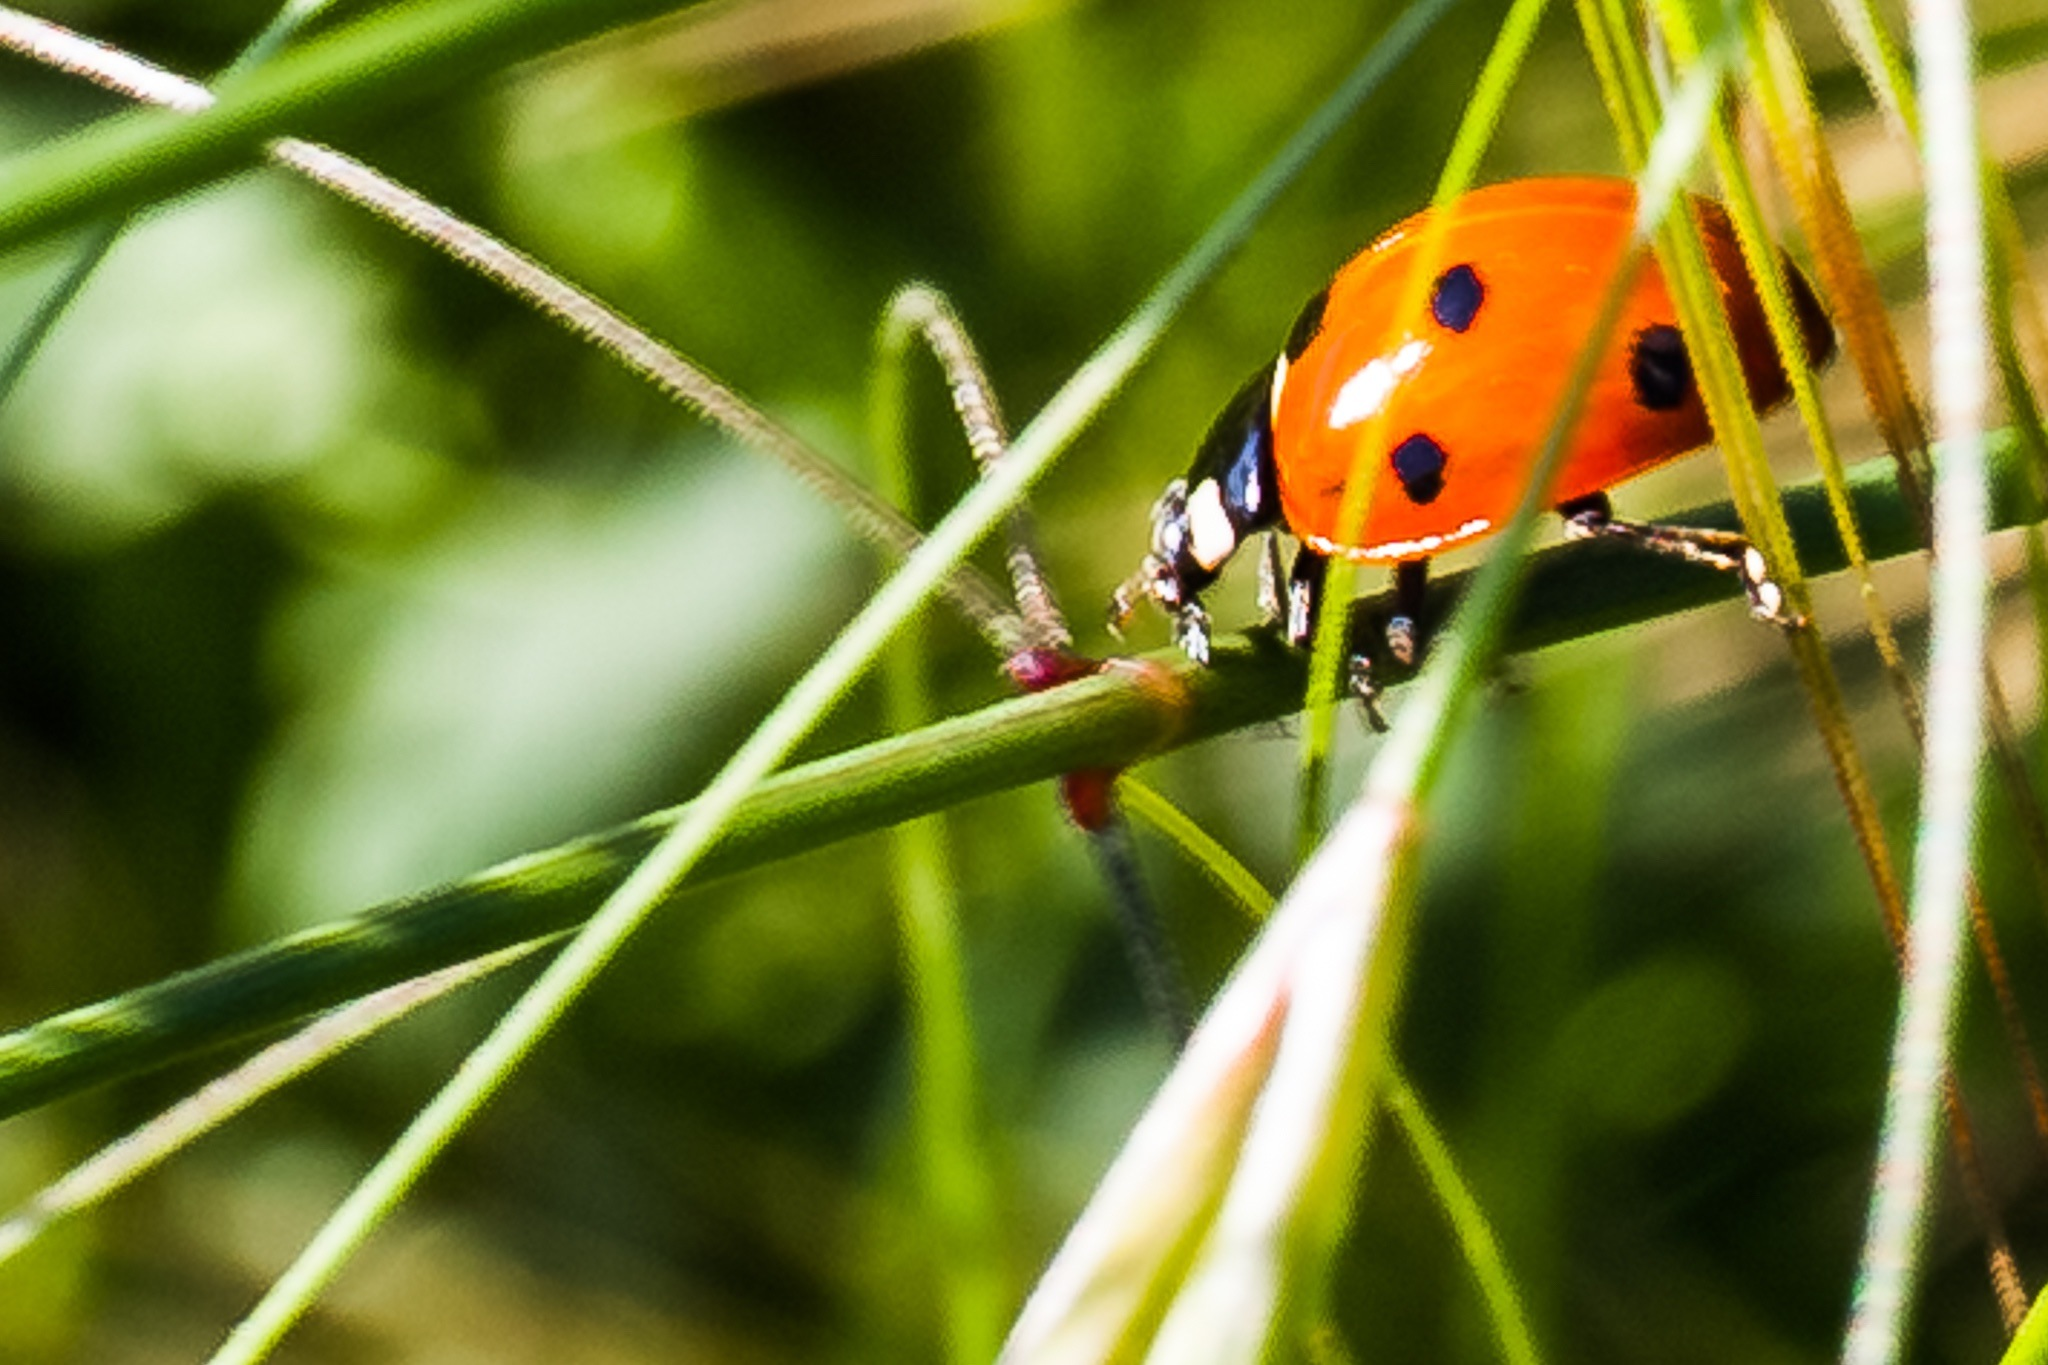 Lady Bug by paolo cancelliere